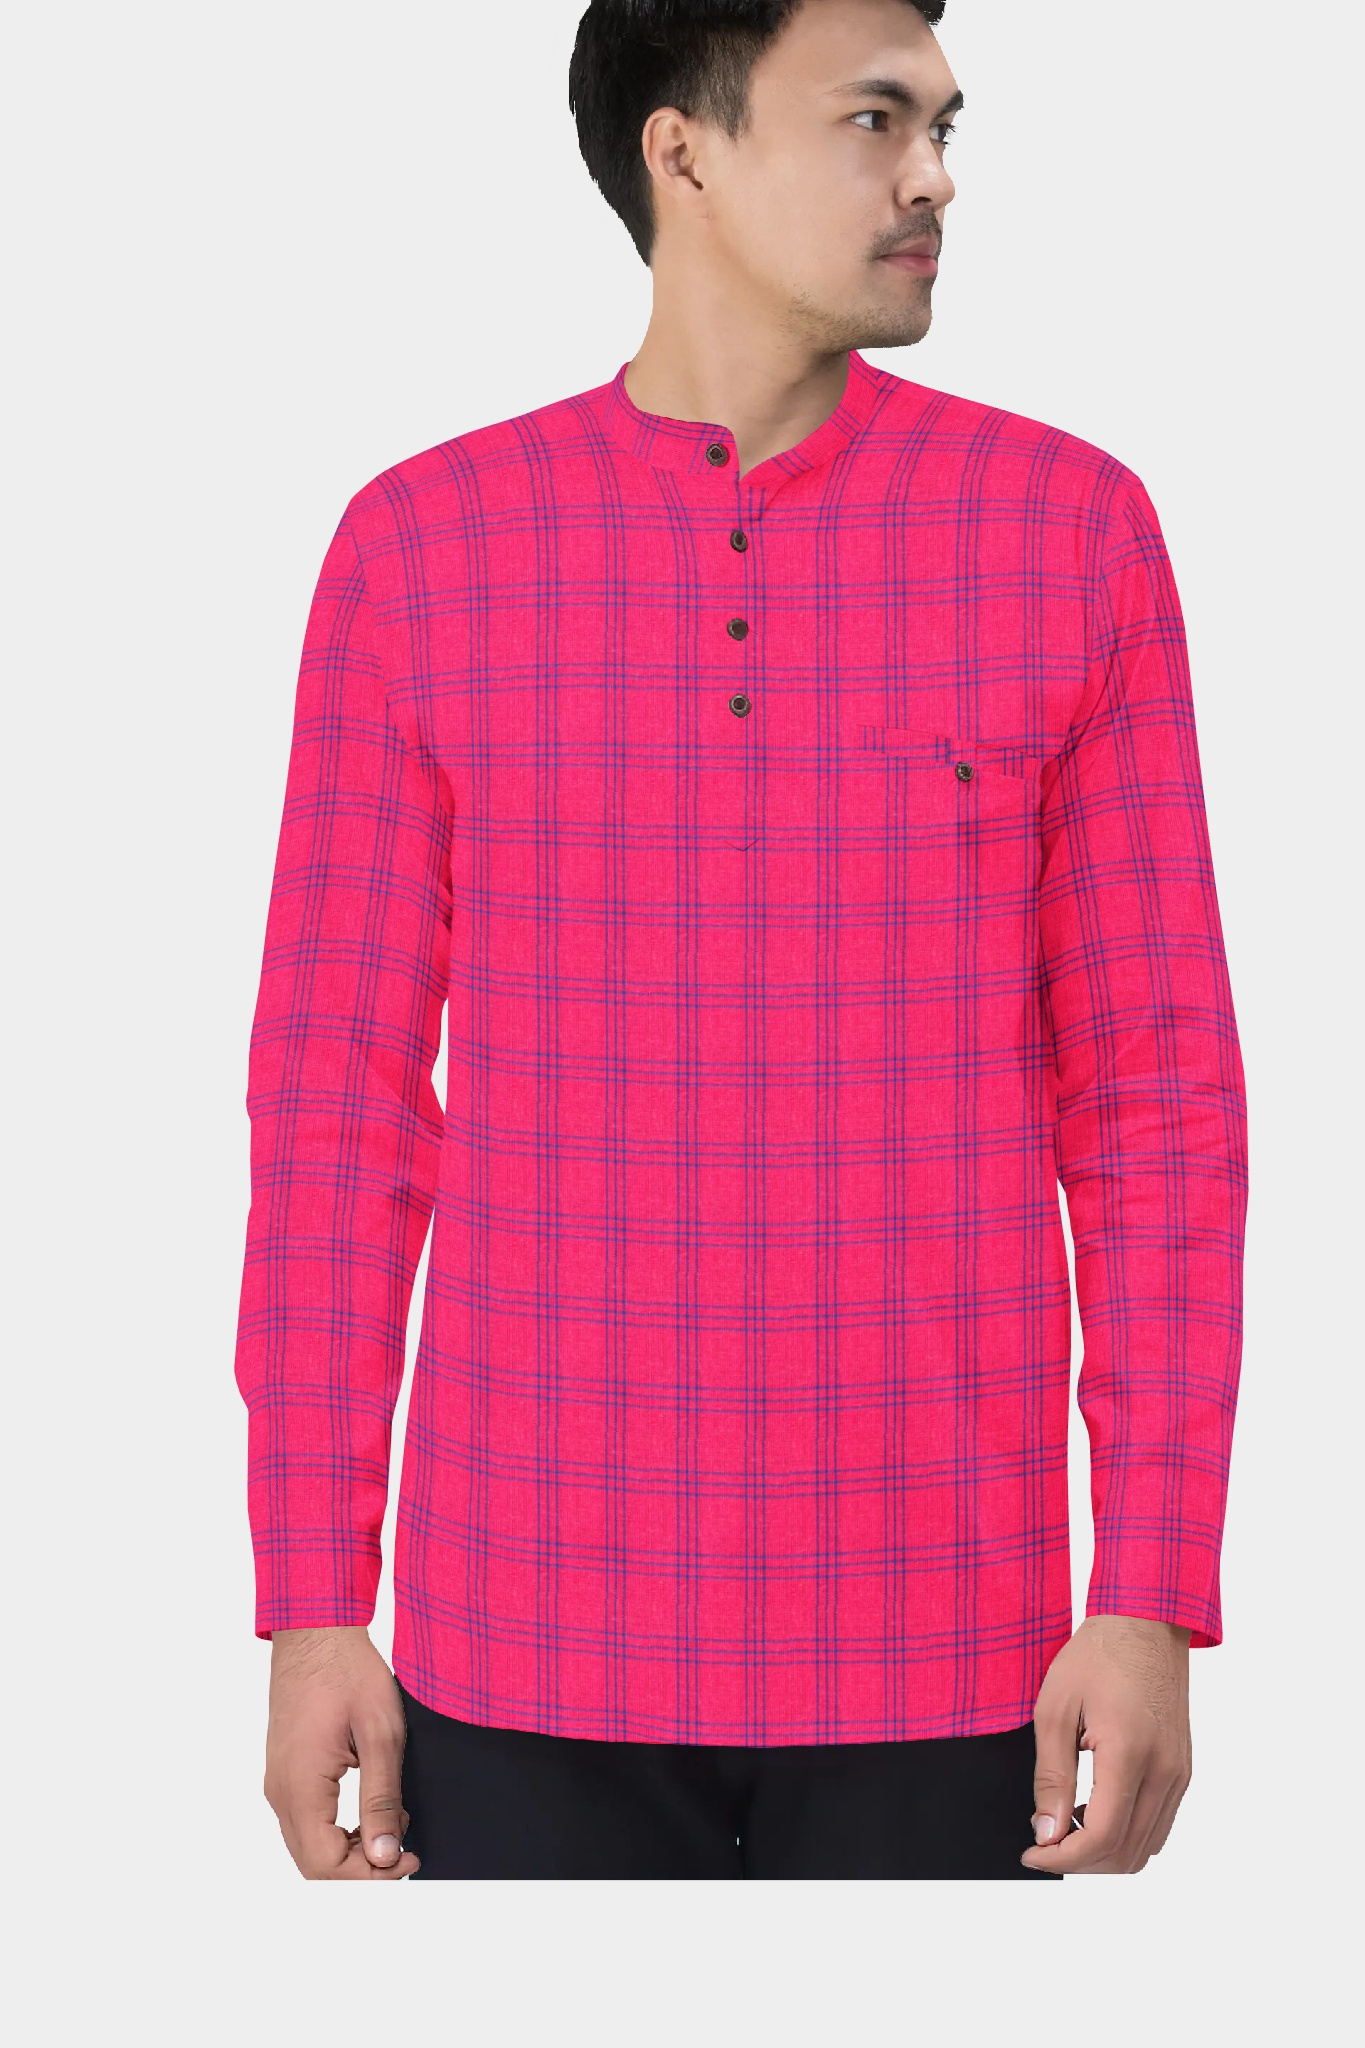 /home/customer/www/fabartcraft.com/public_html/uploadshttps://www.shopolics.com/uploads/images/medium/Magenta-Pink-Blue-Cotton-Short-Kurta-35428.jpg